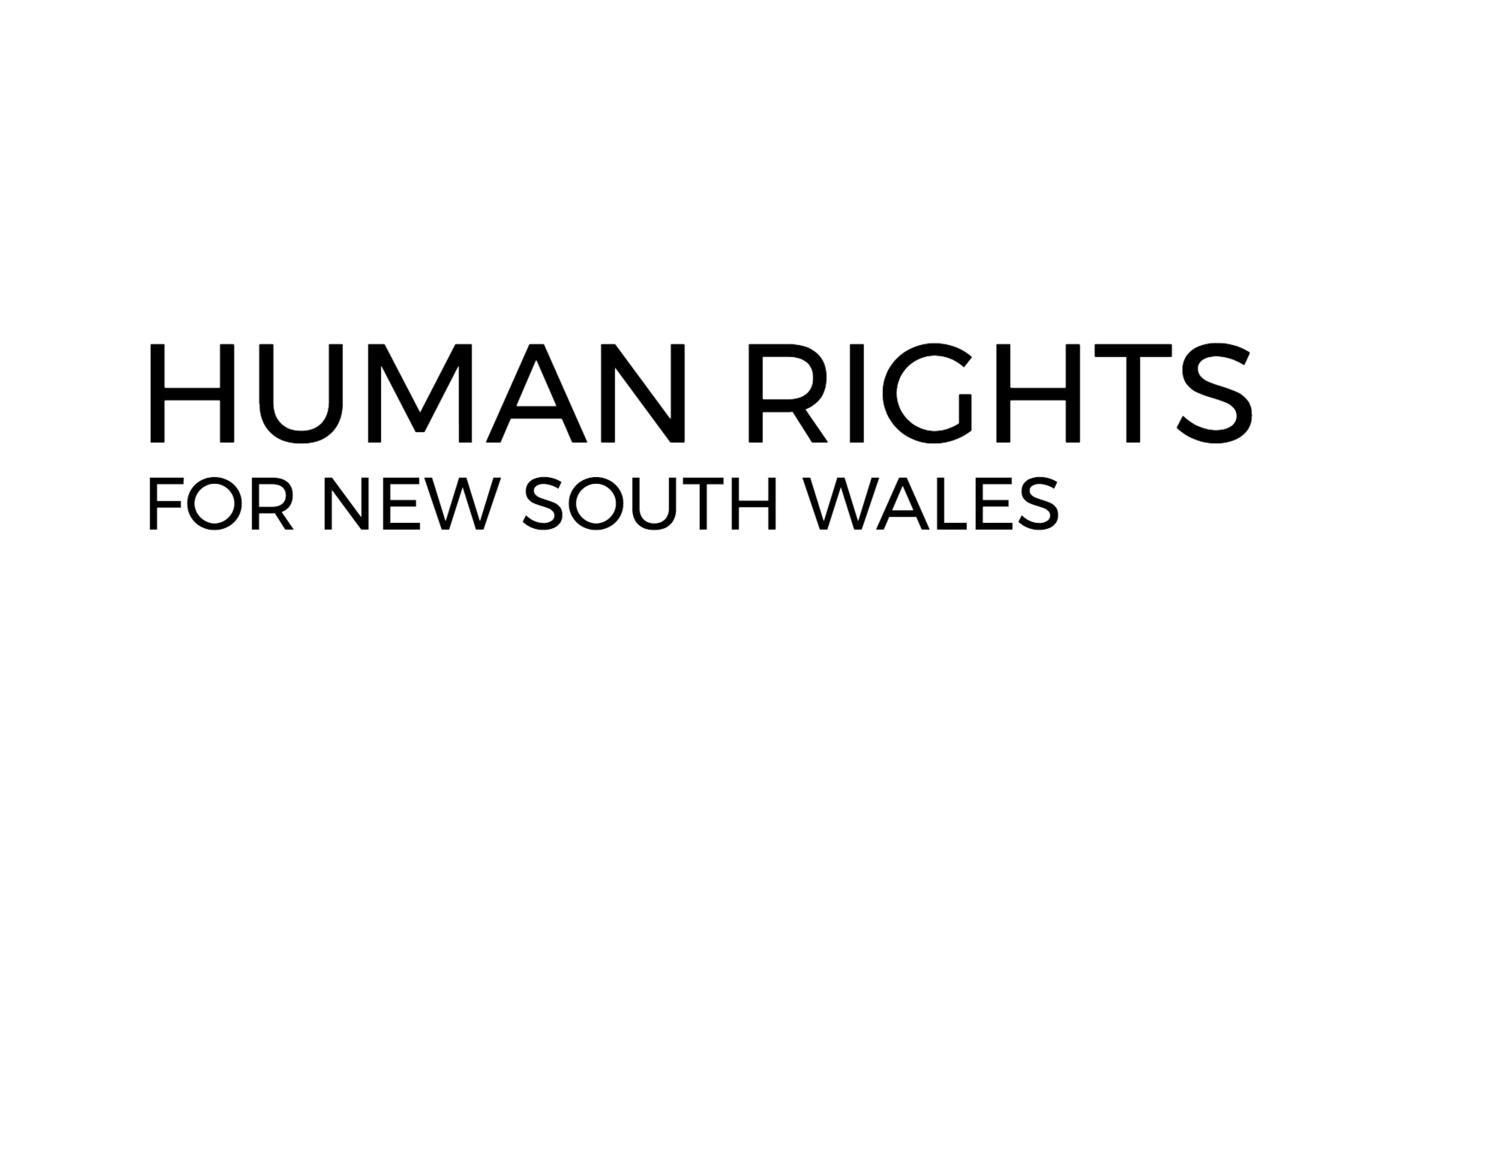 Human Rights for NSW